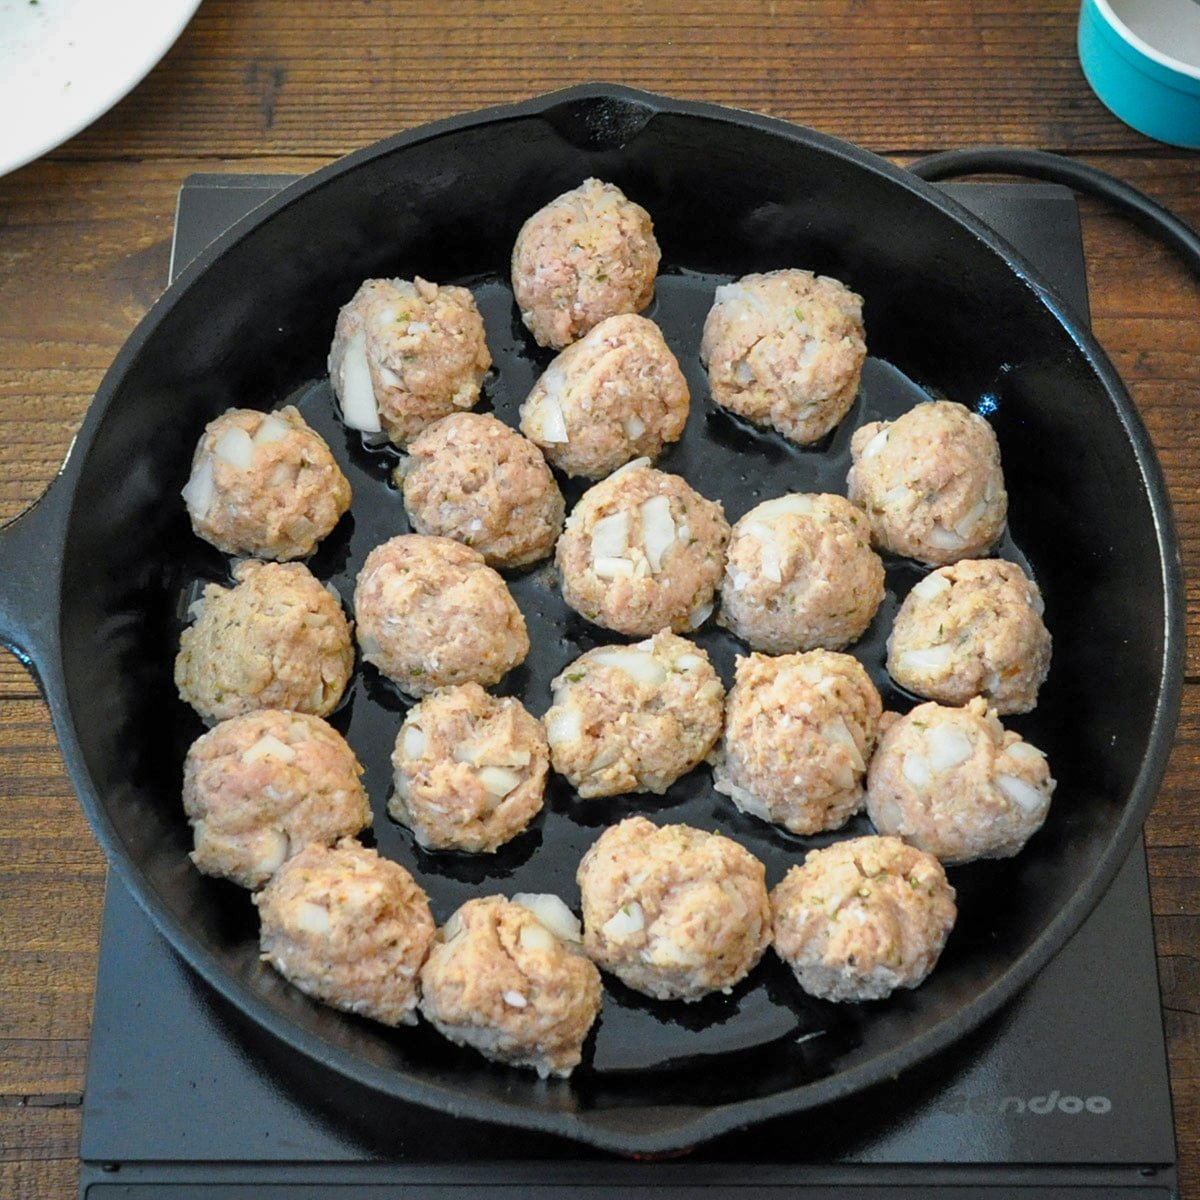 raw meatballs that were just placed in a cast iron skillet